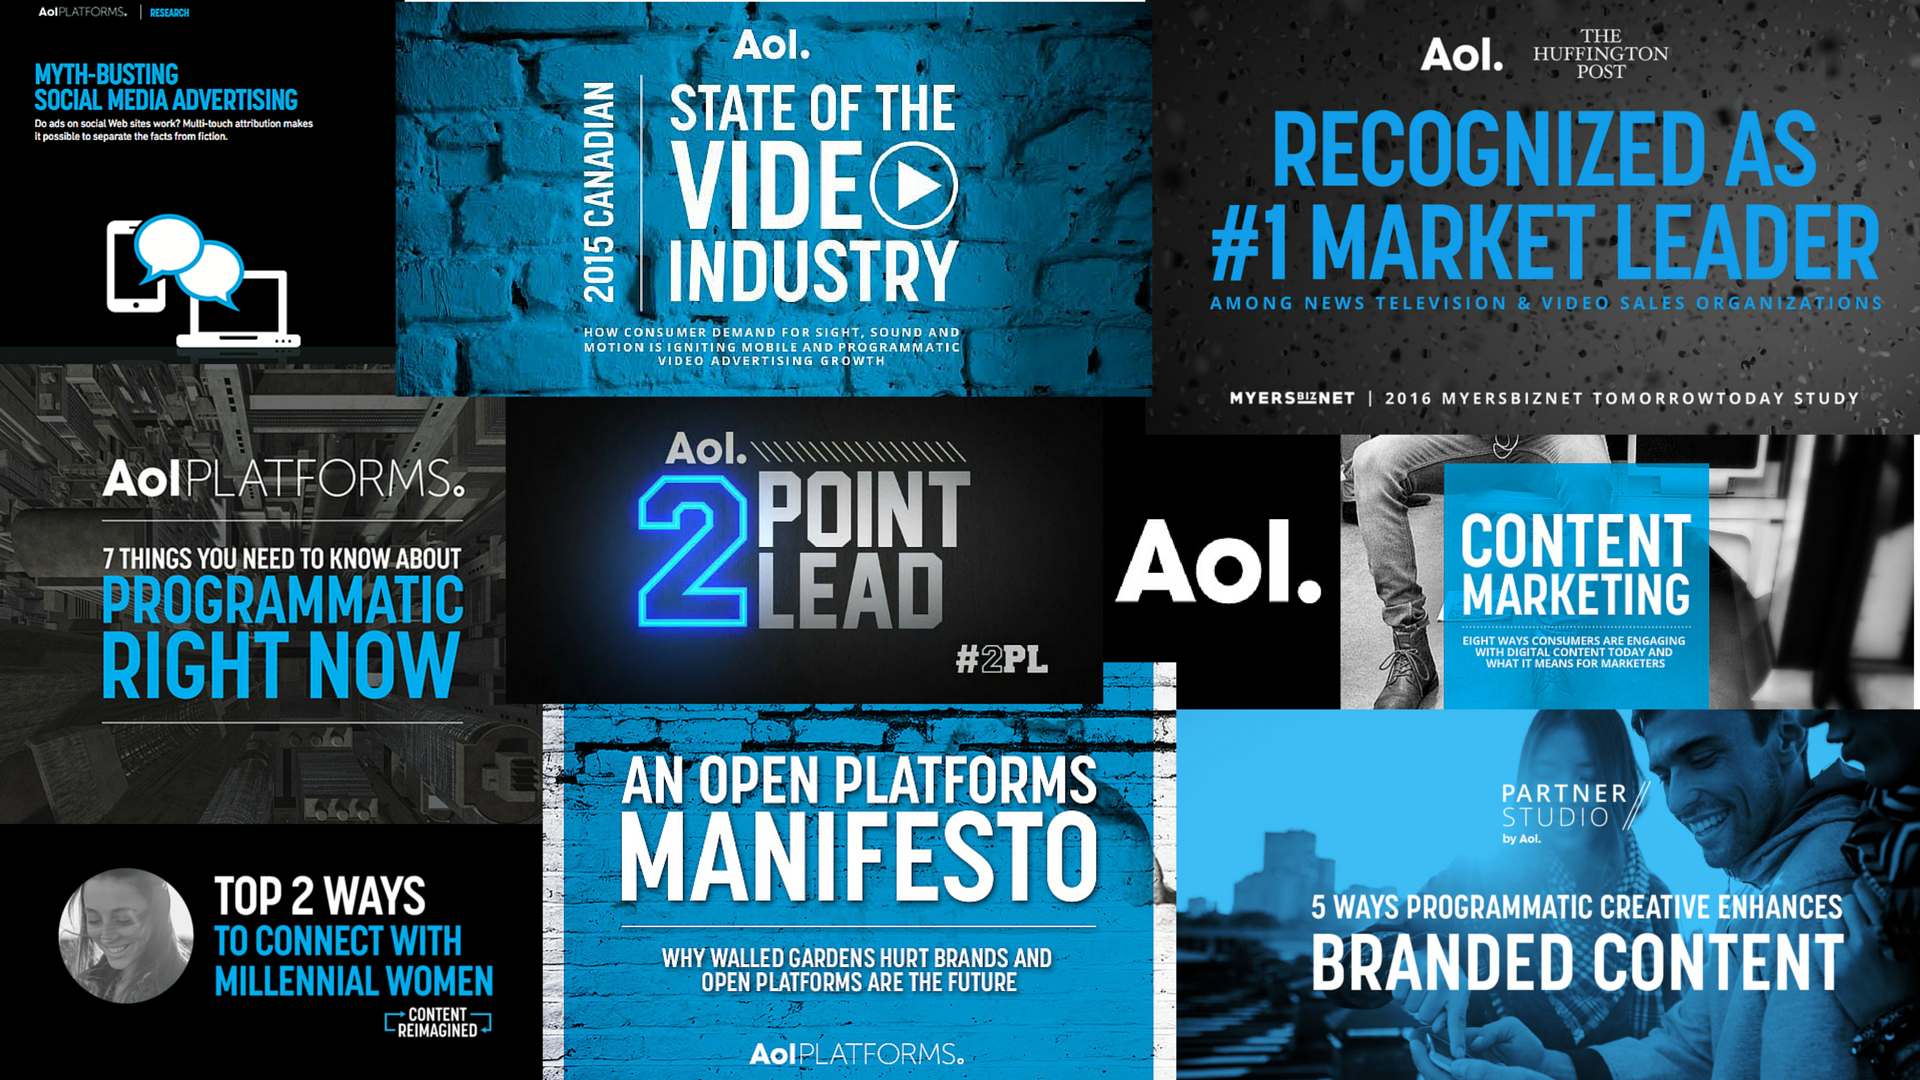 AOL digital ads, blog, covers